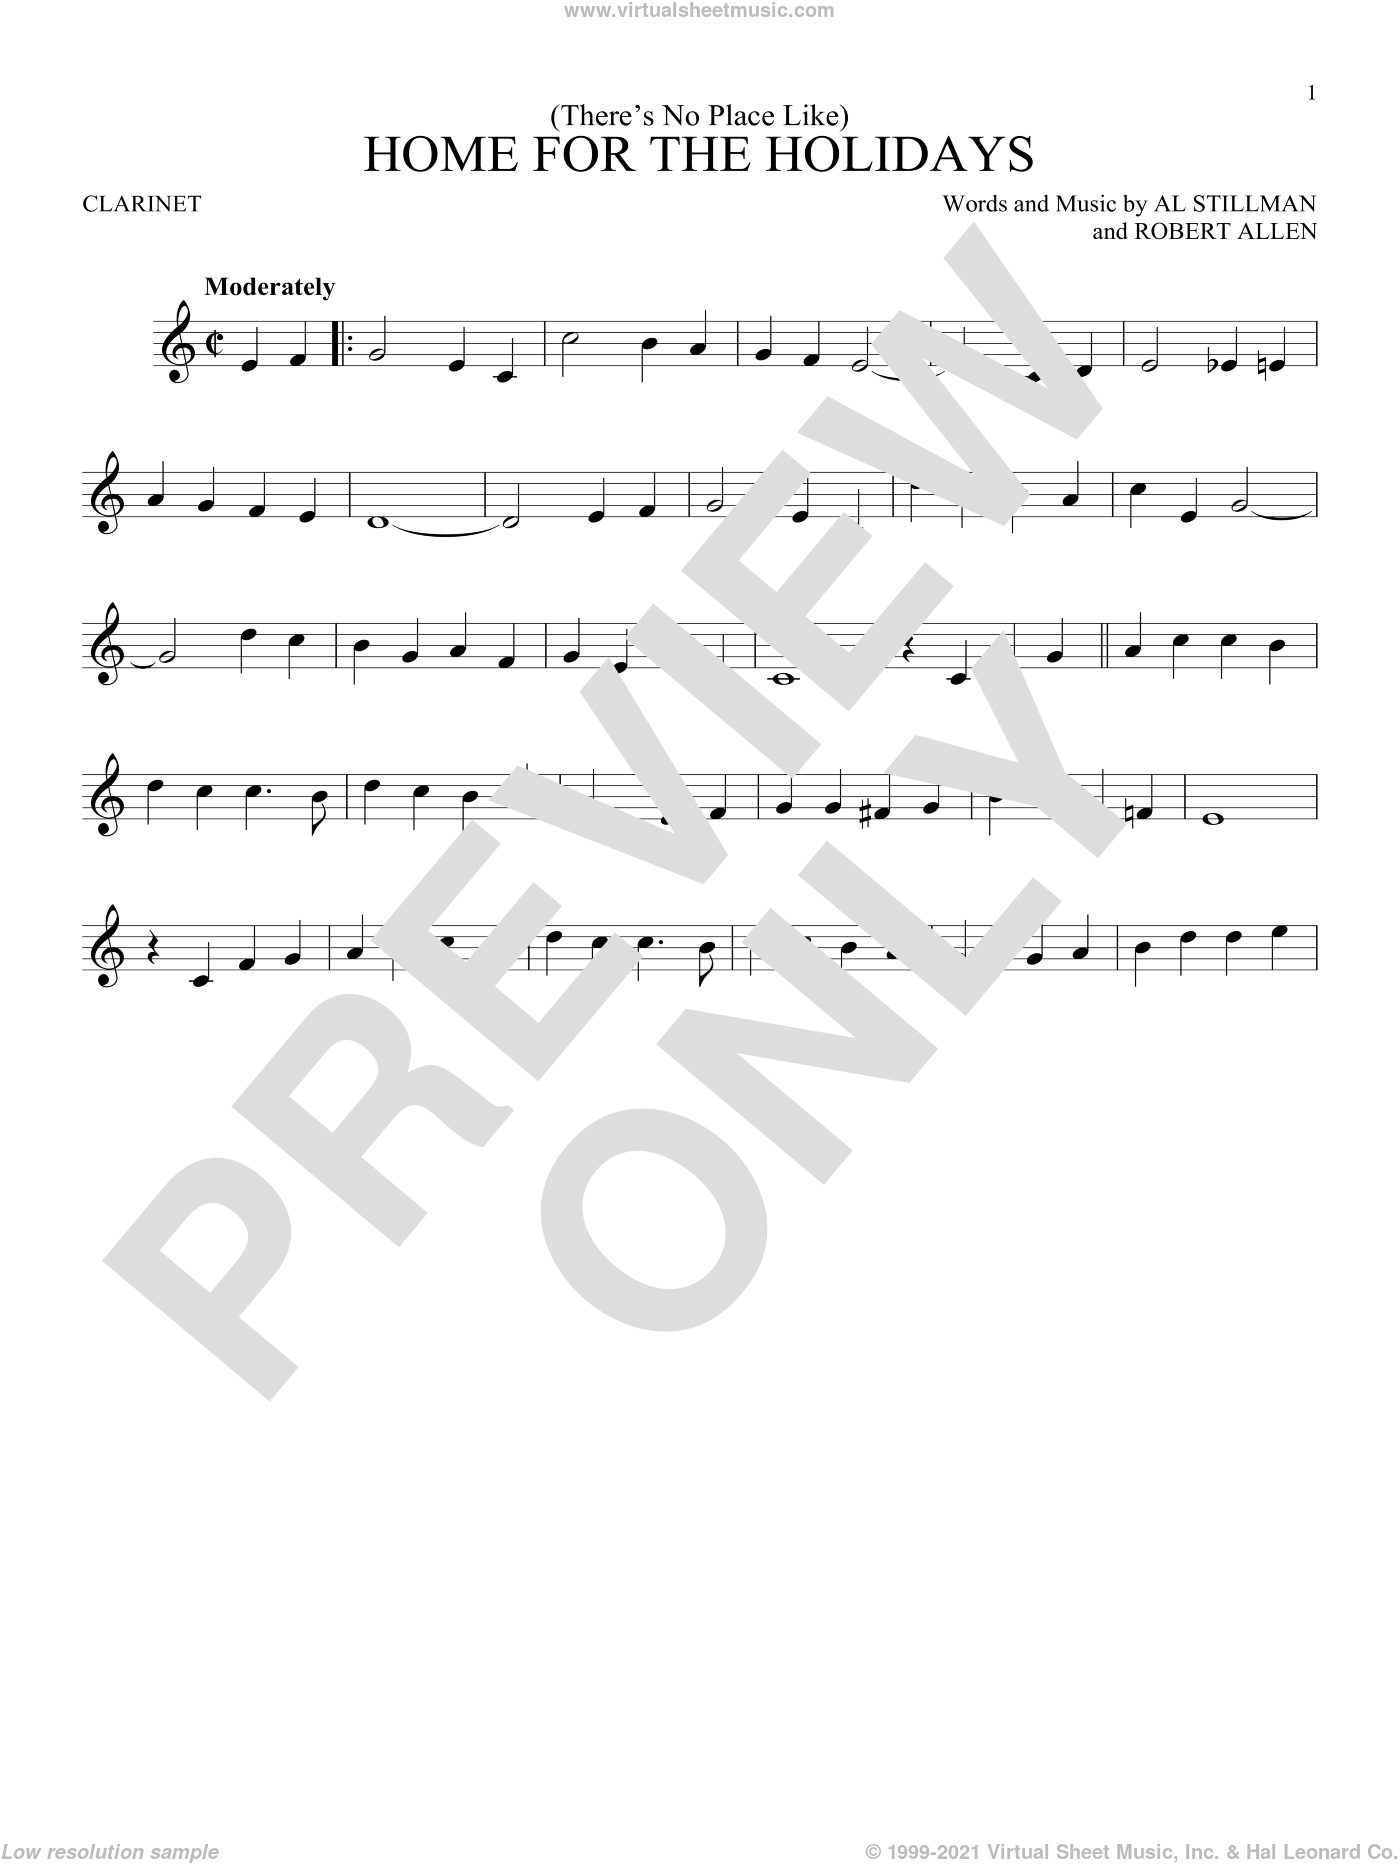 (There's No Place Like) Home For The Holidays sheet music for clarinet solo by Perry Como, Al Stillman and Robert Allen, intermediate